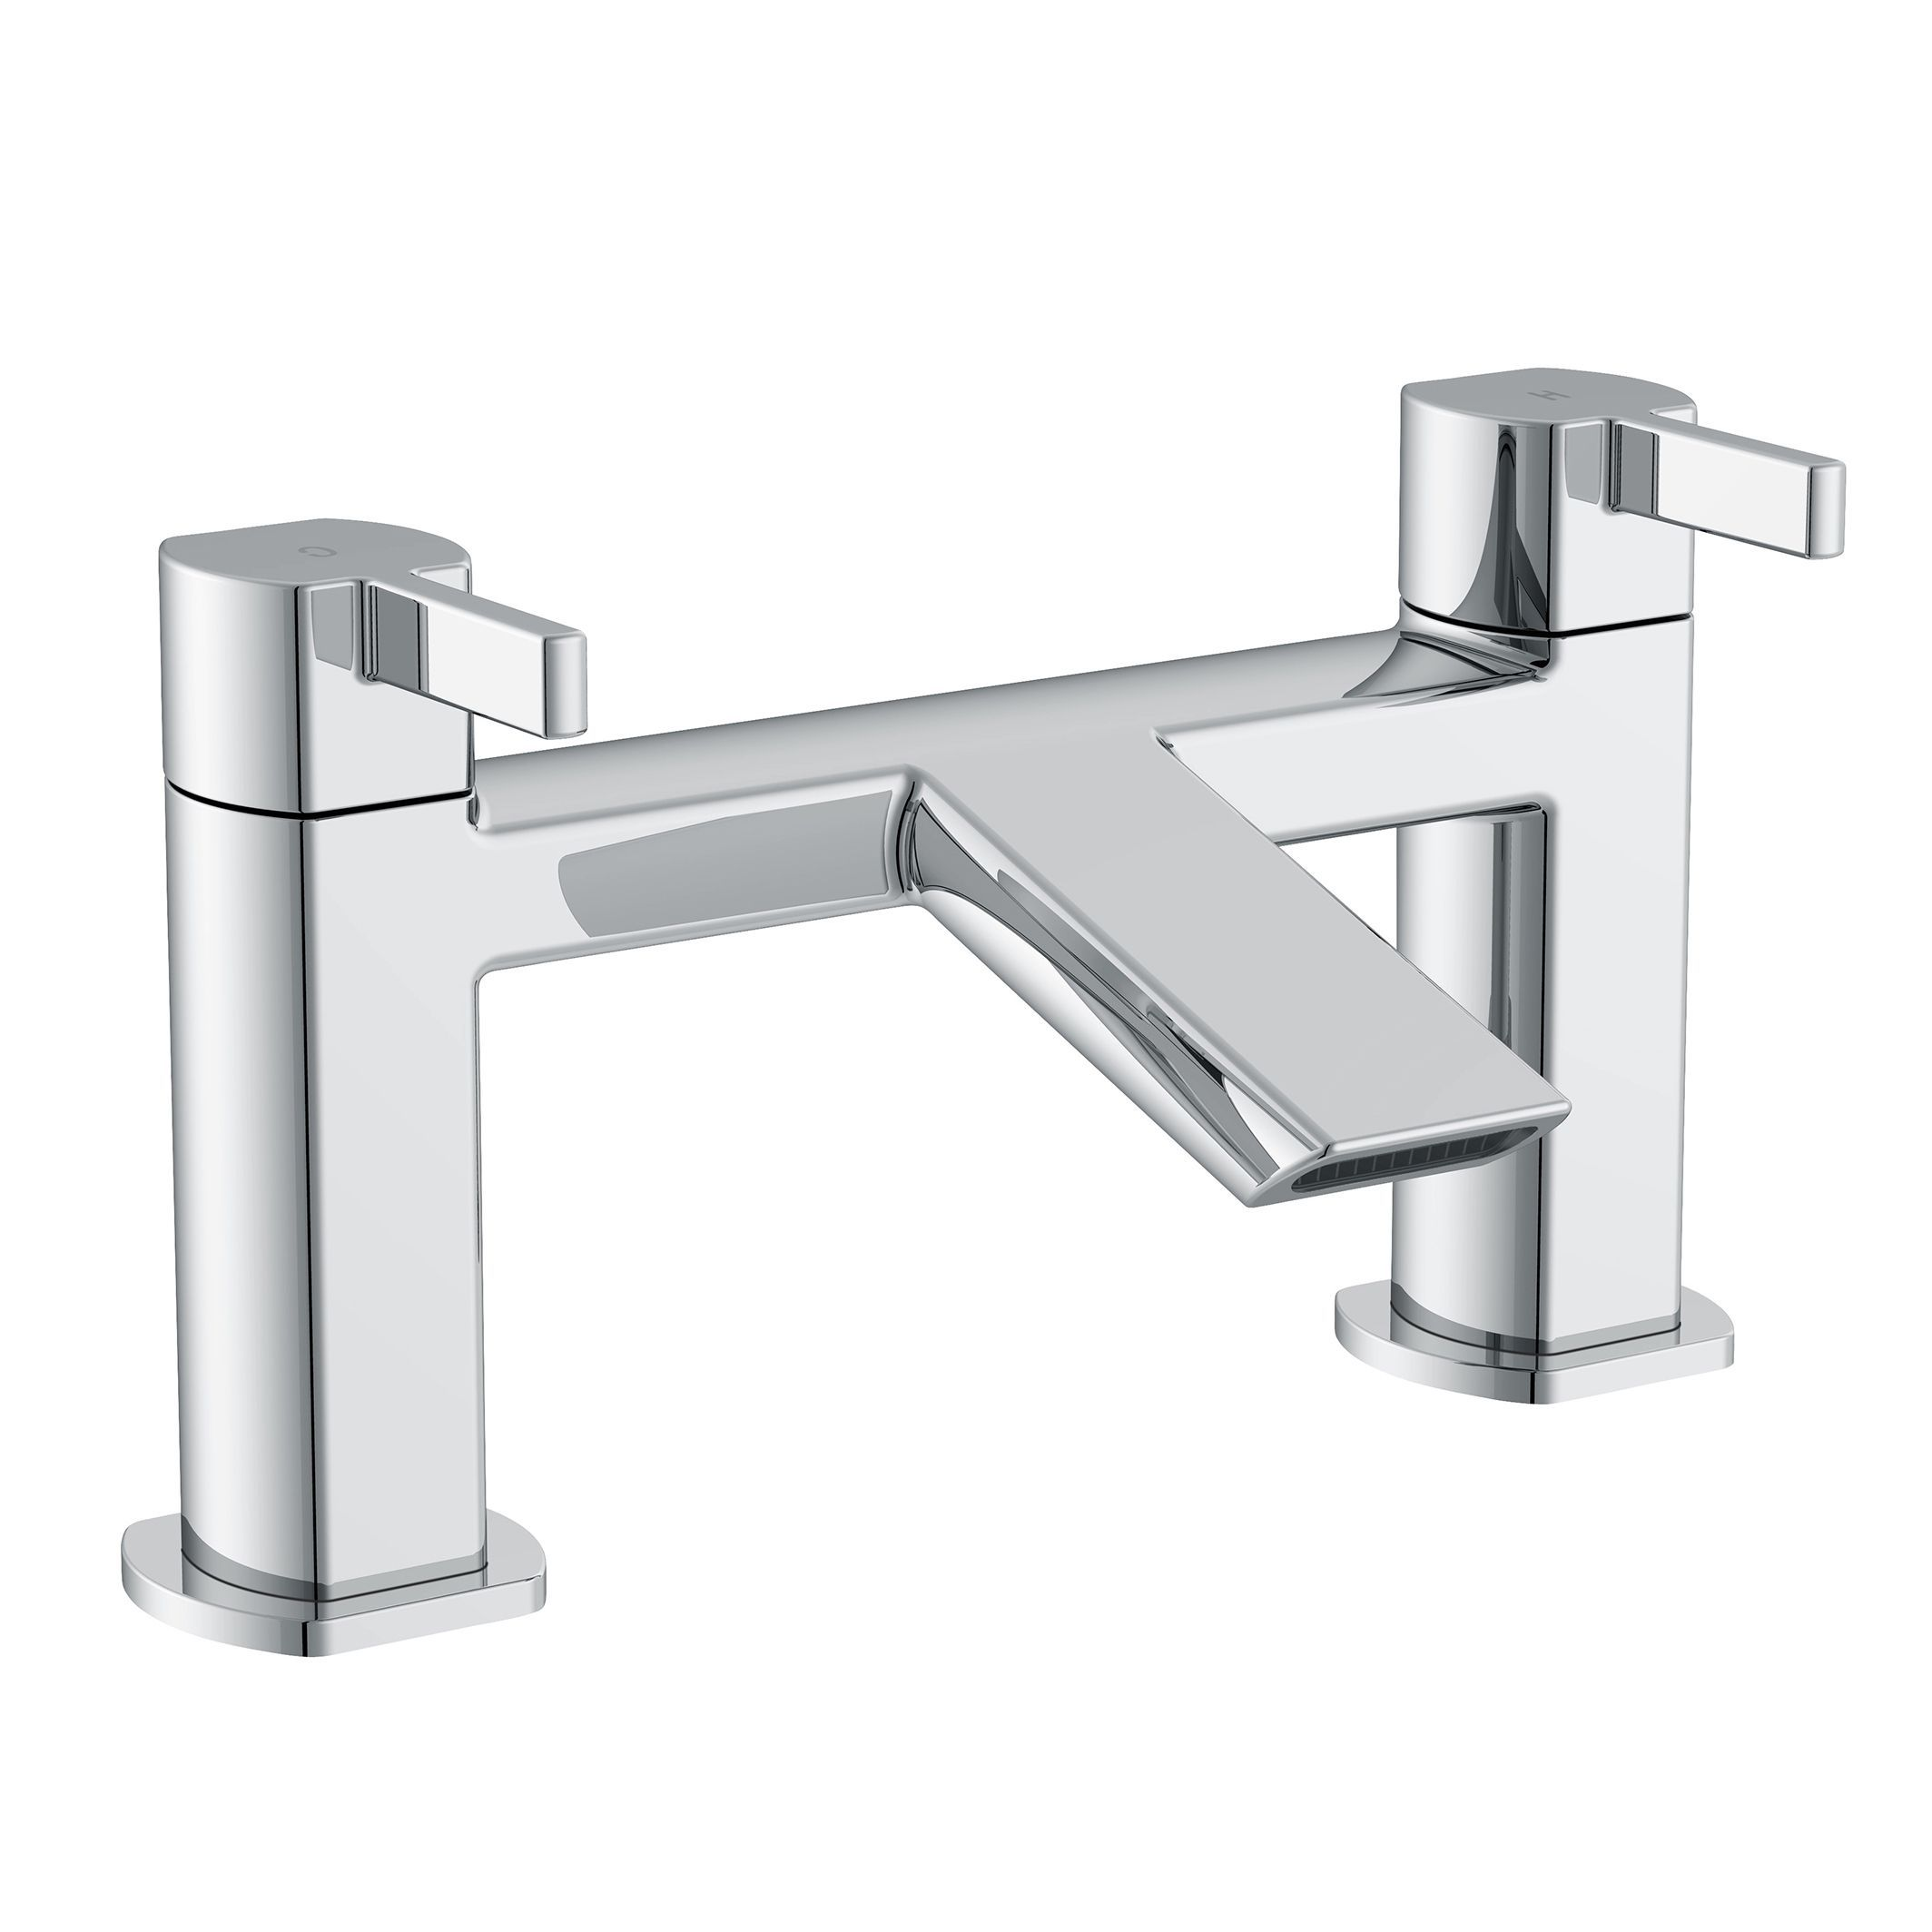 cooke lewis airlie chrome bath mixer tap departments diy at b q. Black Bedroom Furniture Sets. Home Design Ideas